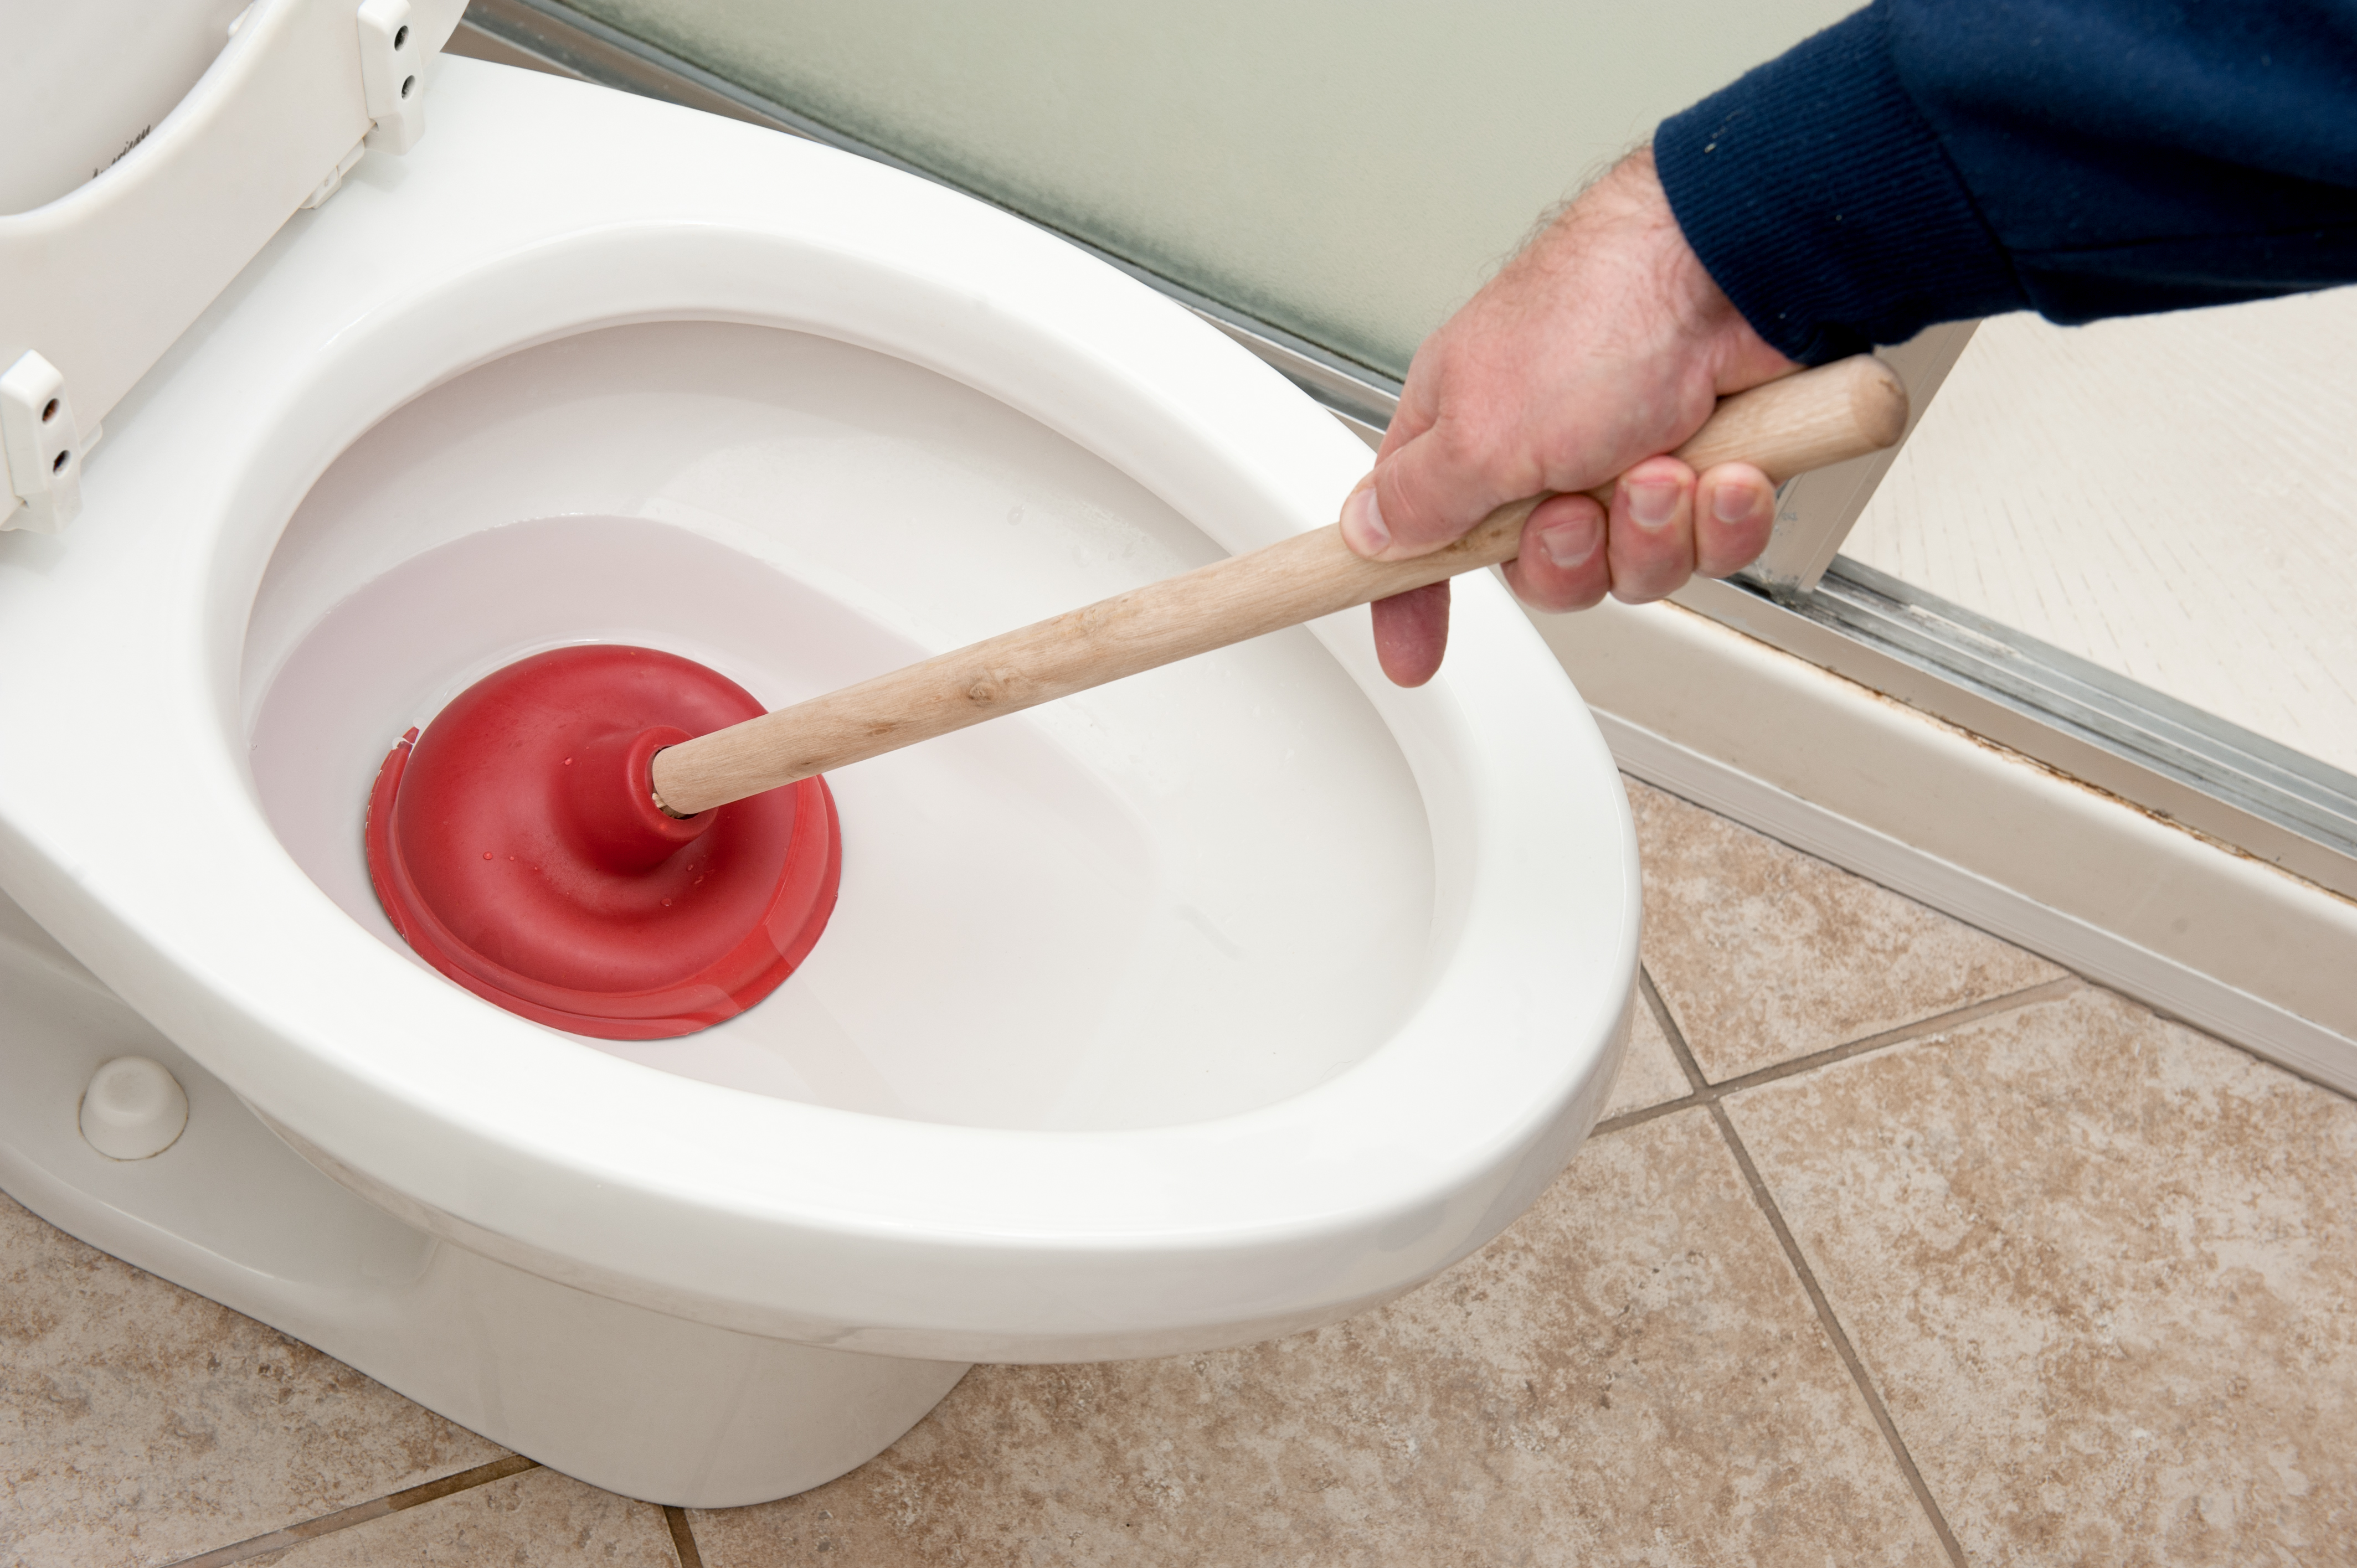 How To Unclog A Toilet Without A Plunger Or Snake Home Guides Sf